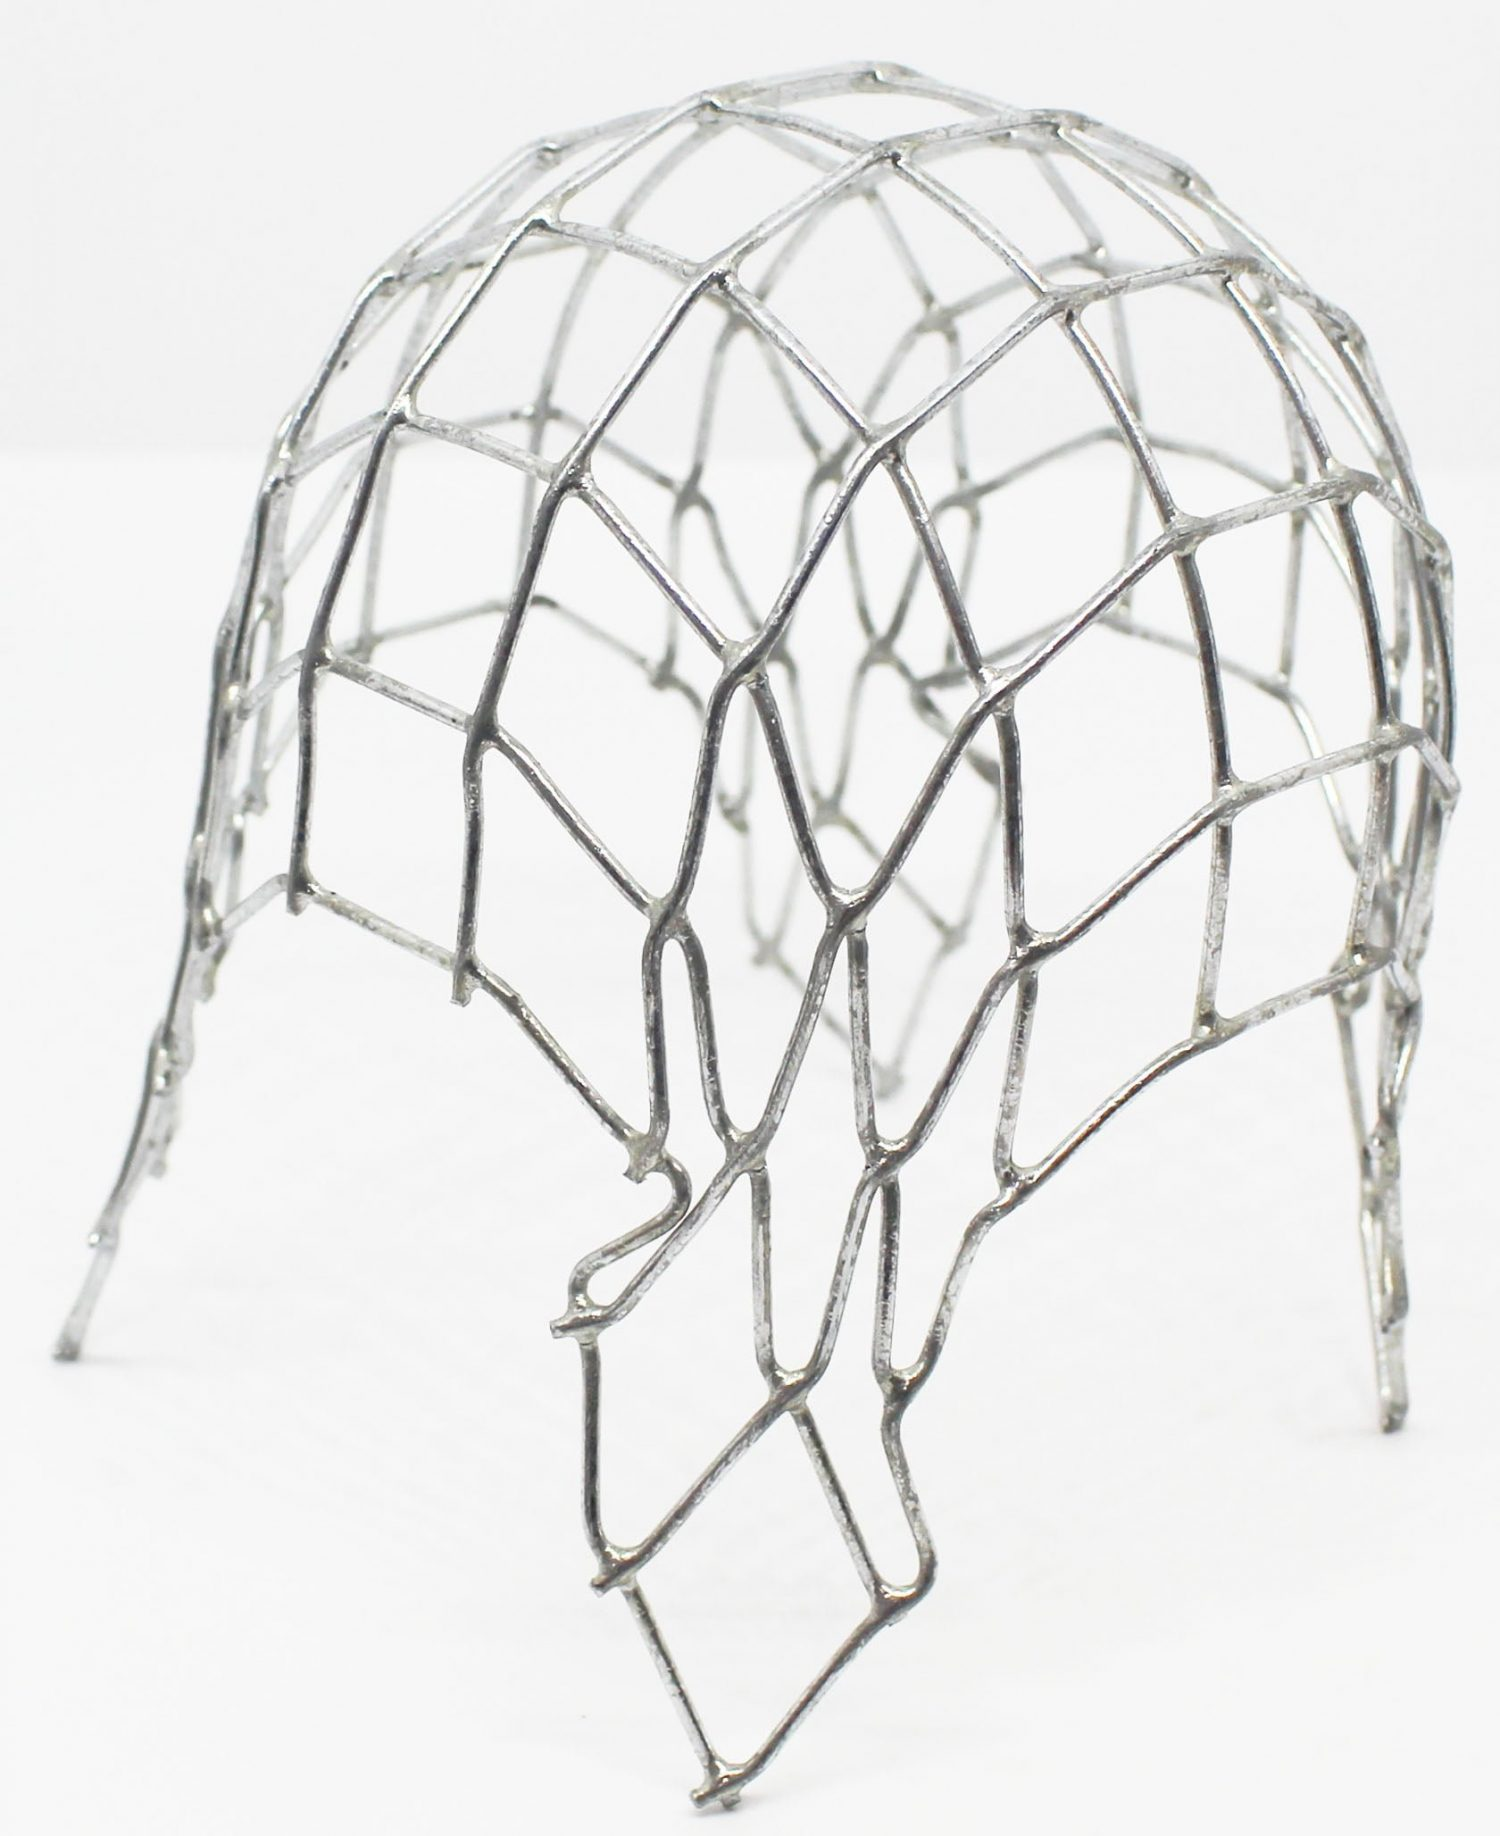 Galvanised Wire Chimney Balloons - 2.5